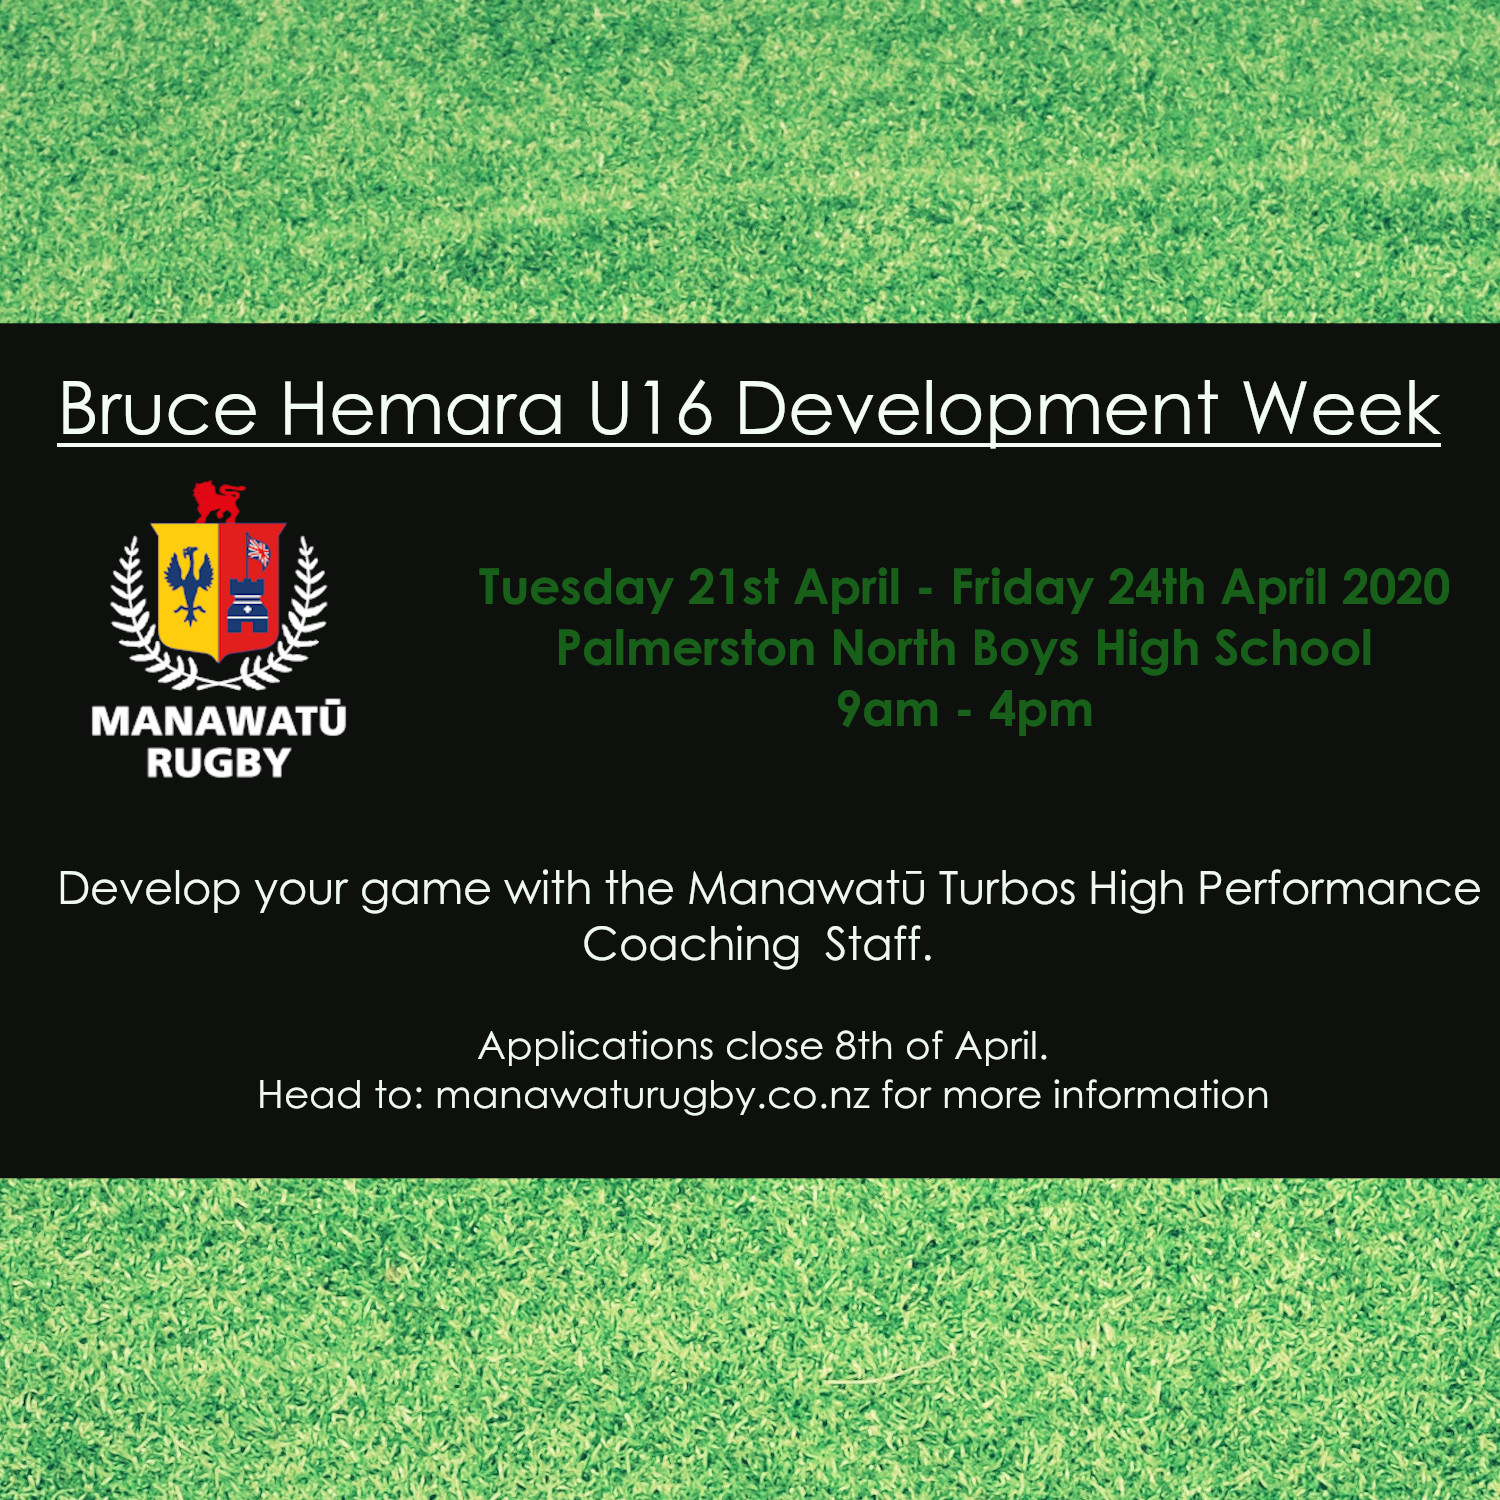 Bruce Hemara Under 16 Development Week